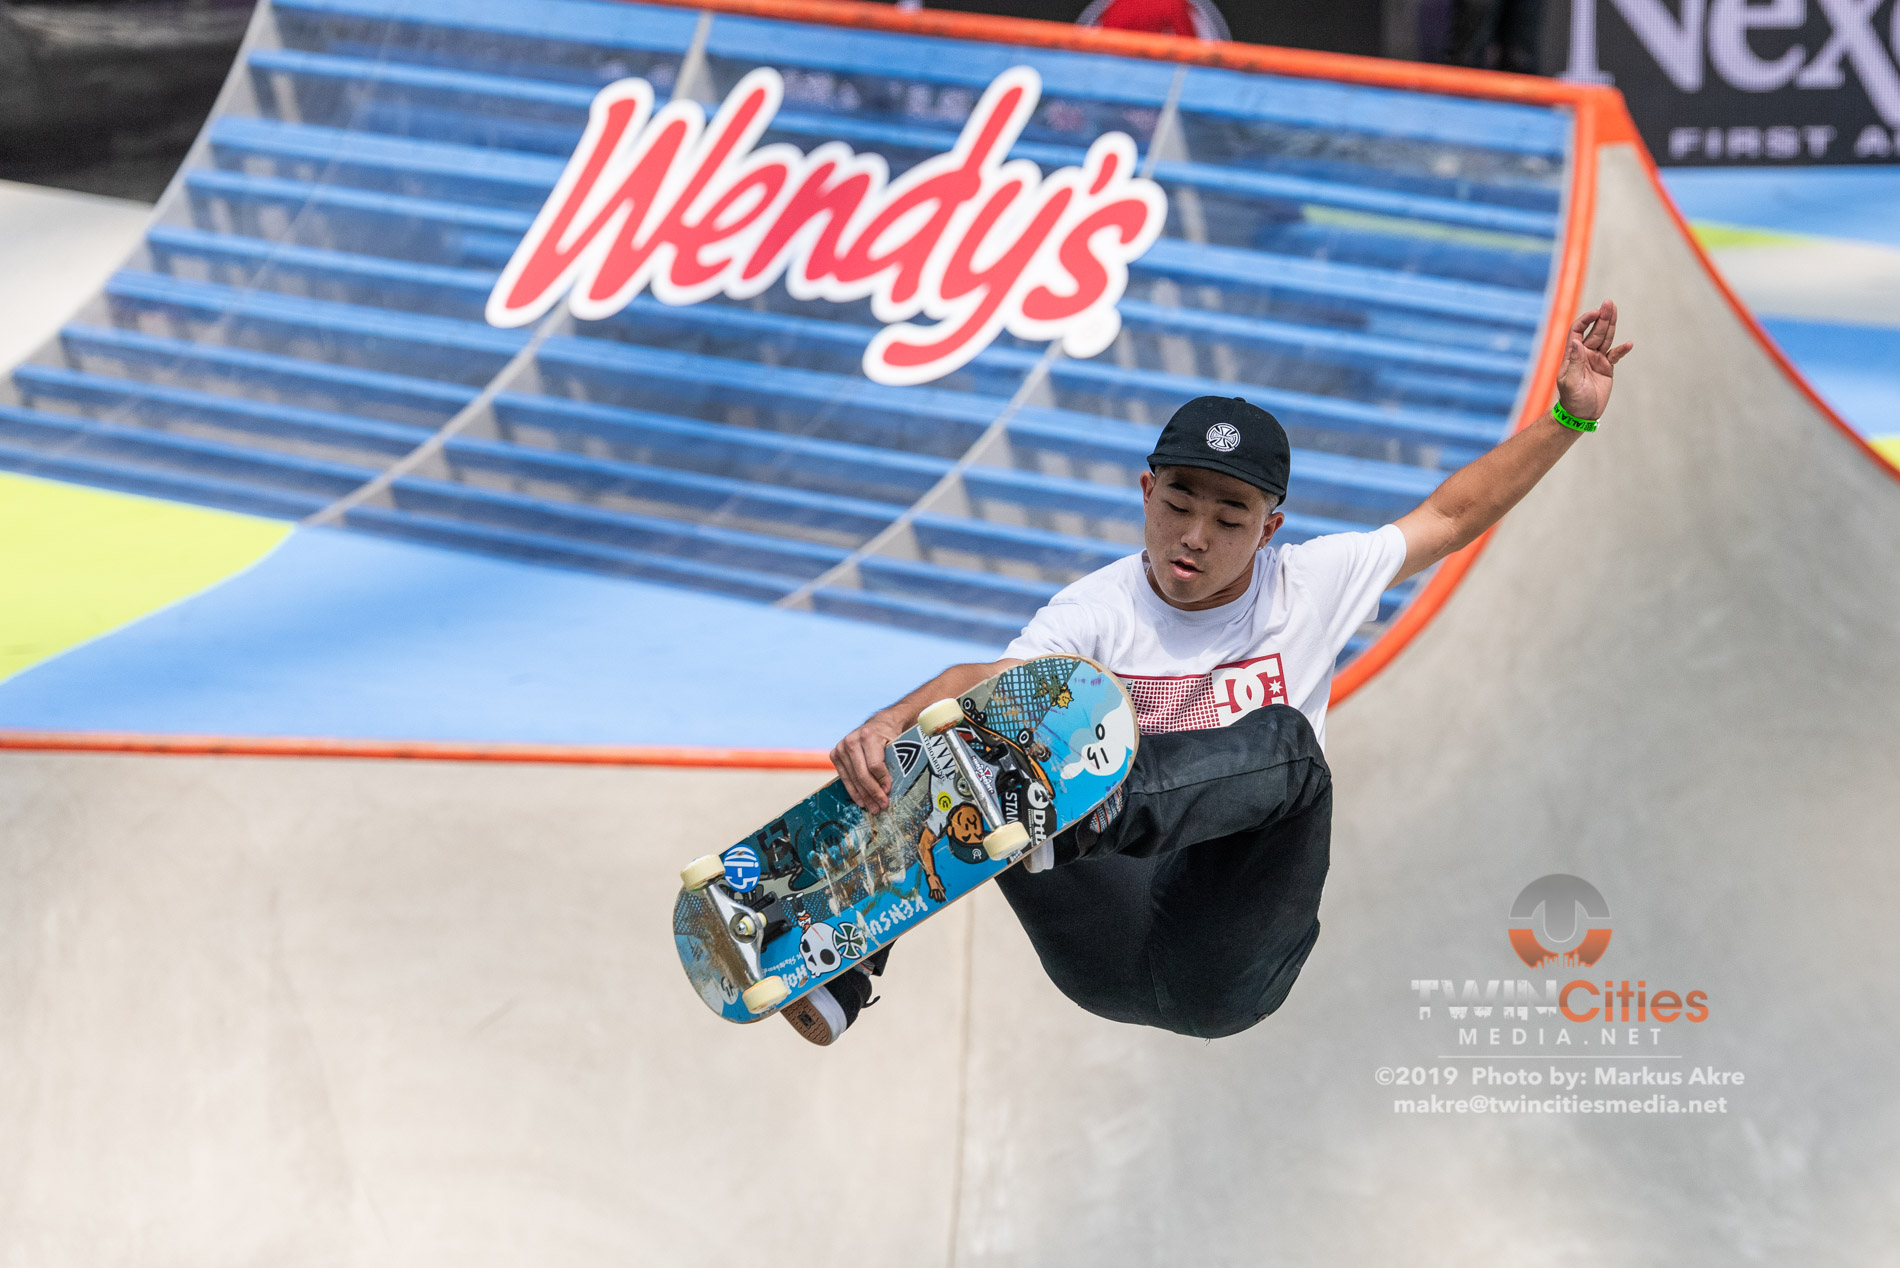 2019-X-Games-Day-4-Mens-Skateboard-Park-8